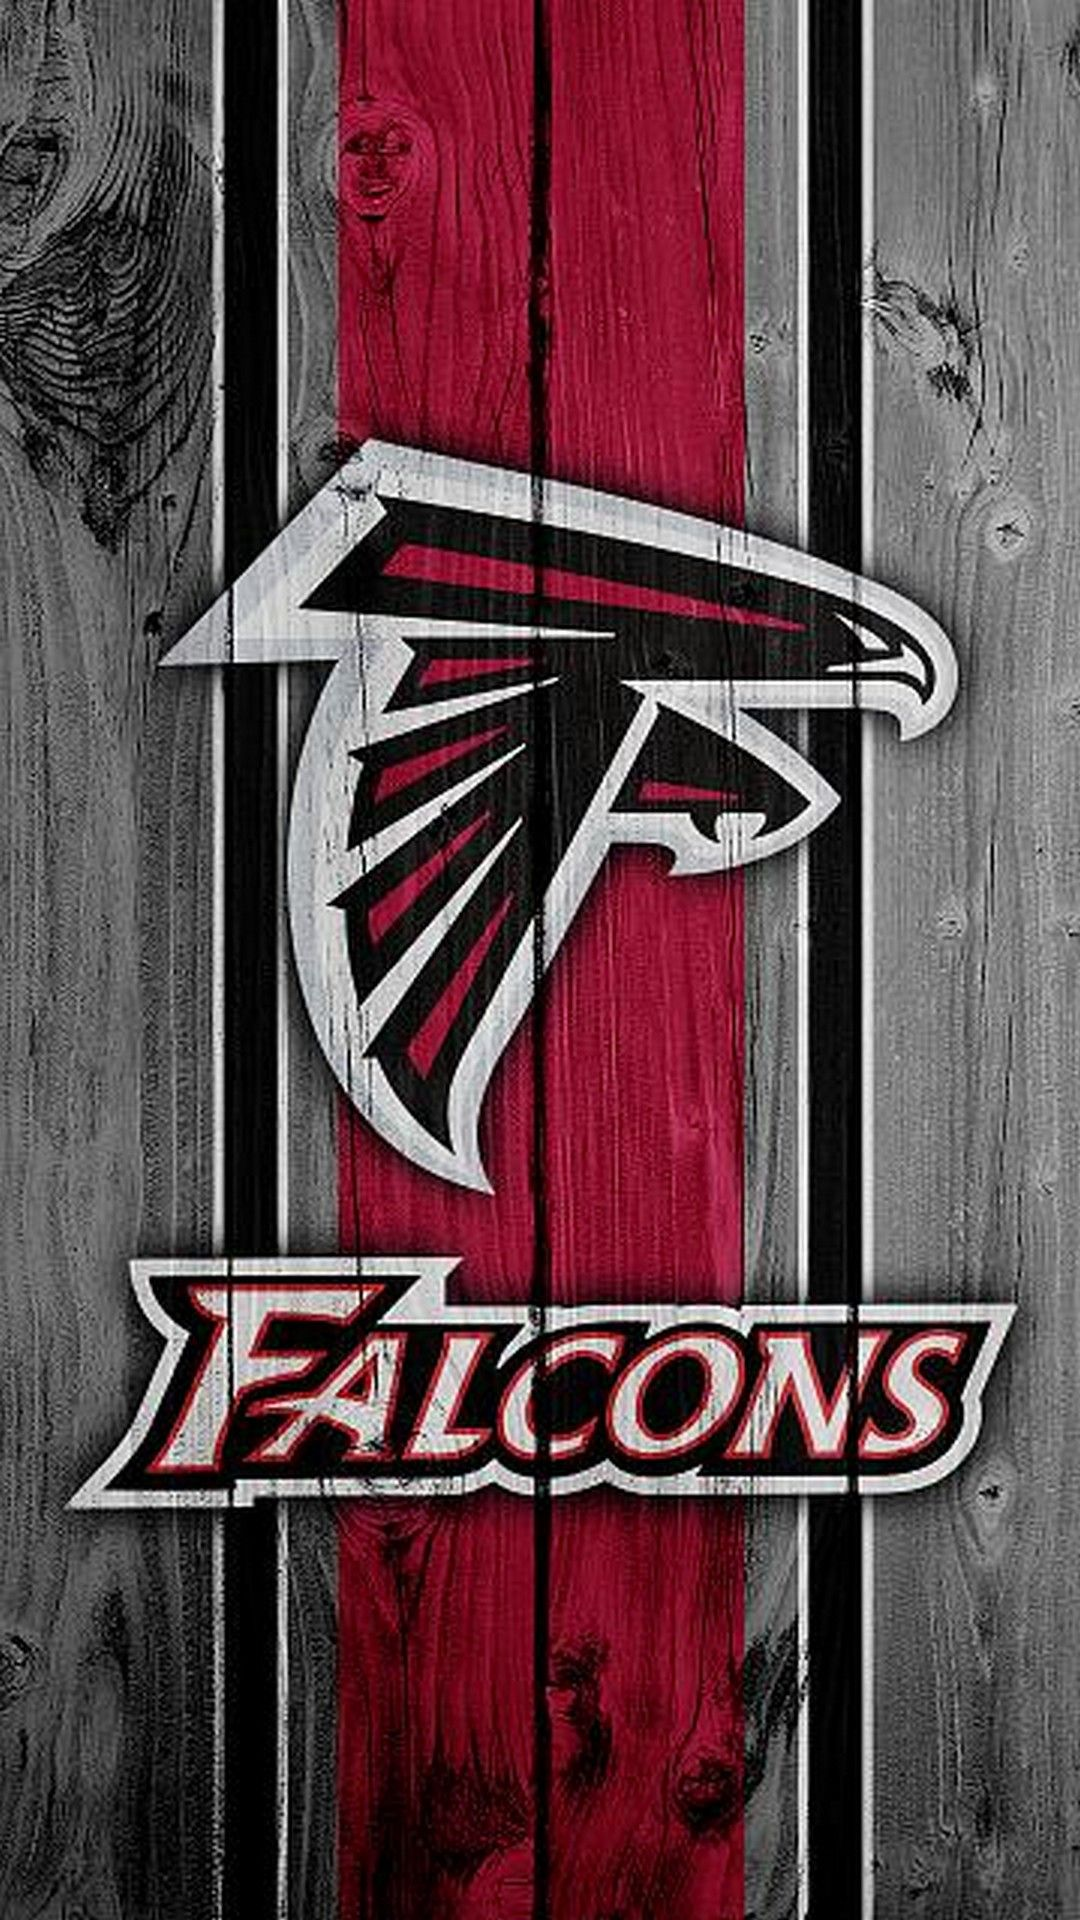 Atlanta Falcons Iphone Wallpaper Hd Best Nfl Wallpaper Fondos De Pantalla Futbol Americano